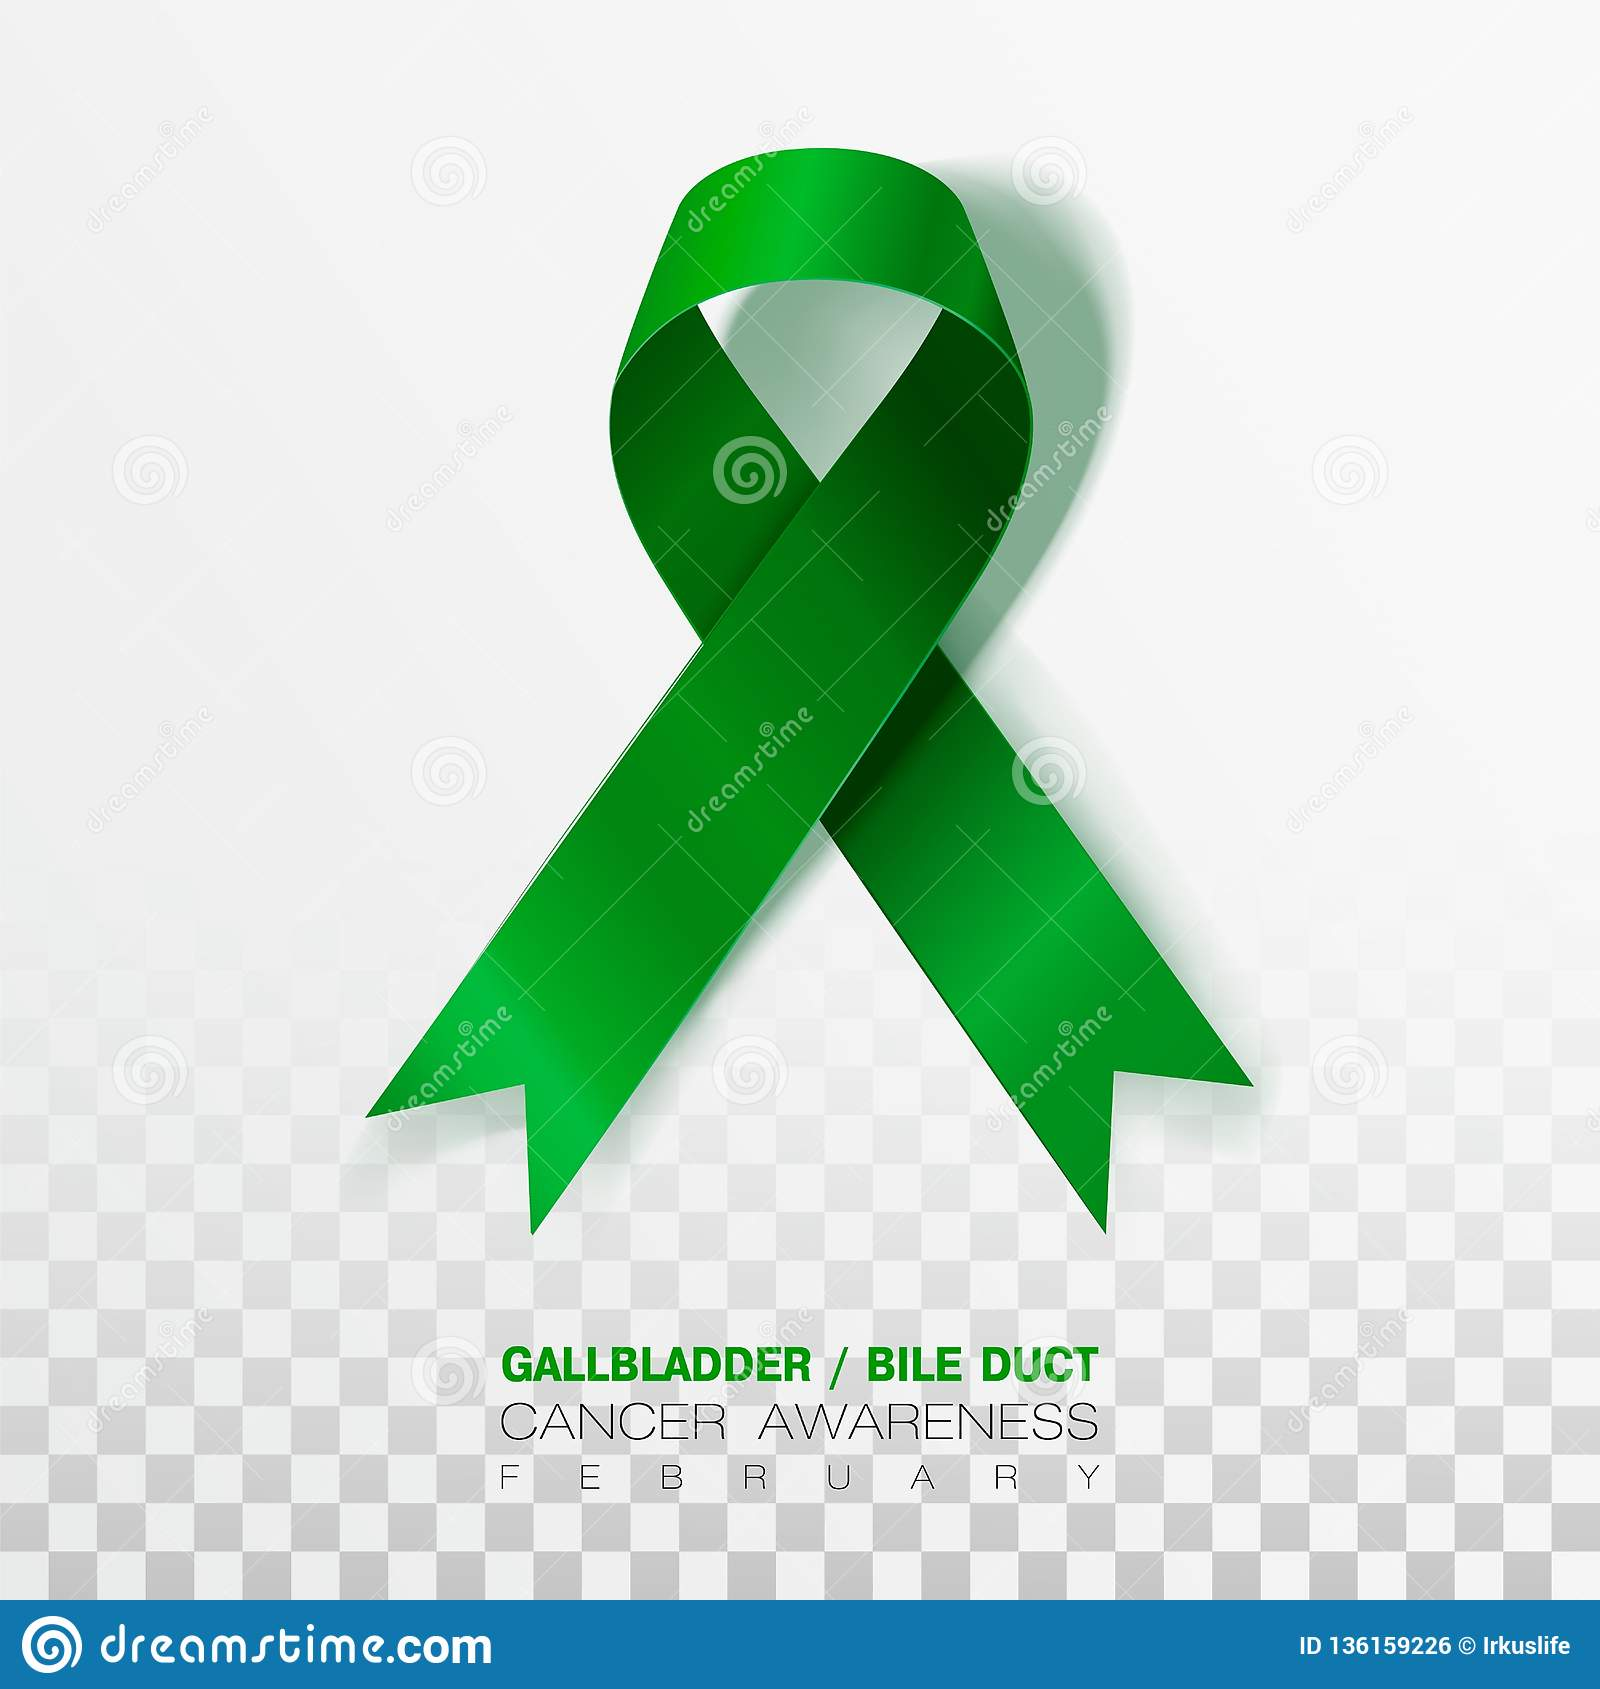 Gallbladder And Bile Duct Cancer Awareness Month